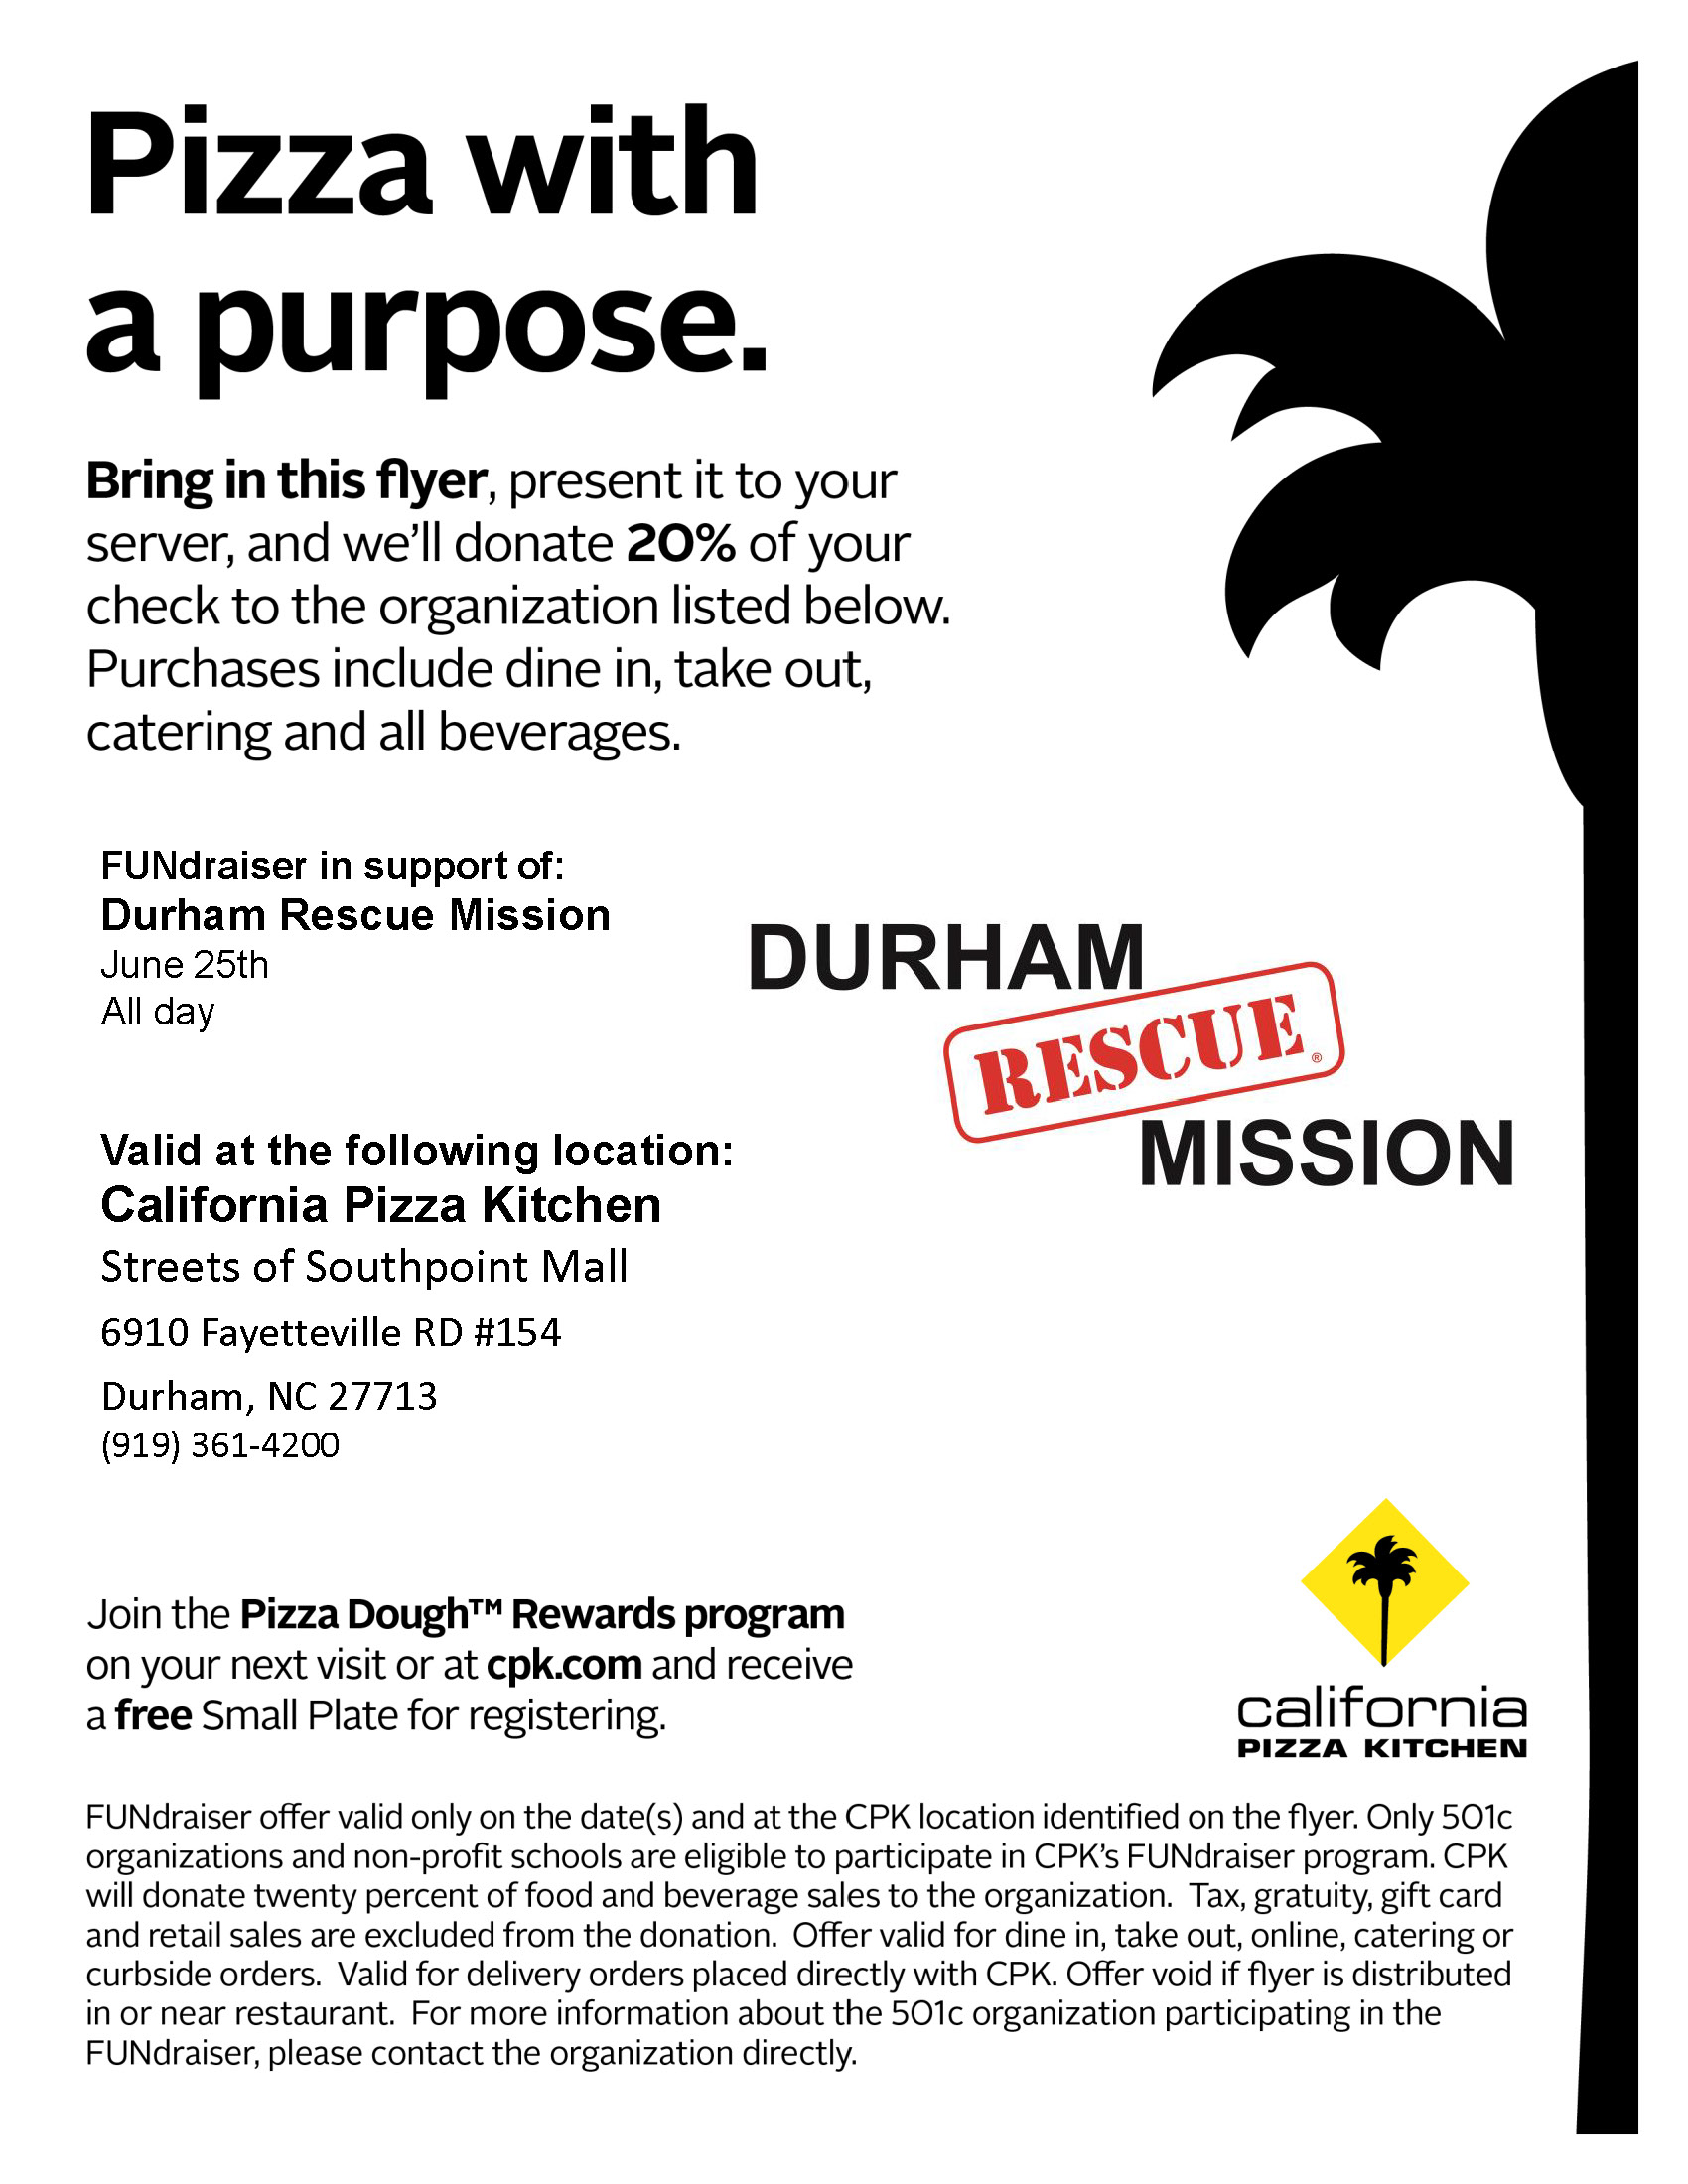 FUNdraiser_Self_Delivery_Flyer_Durham Rescue Mission